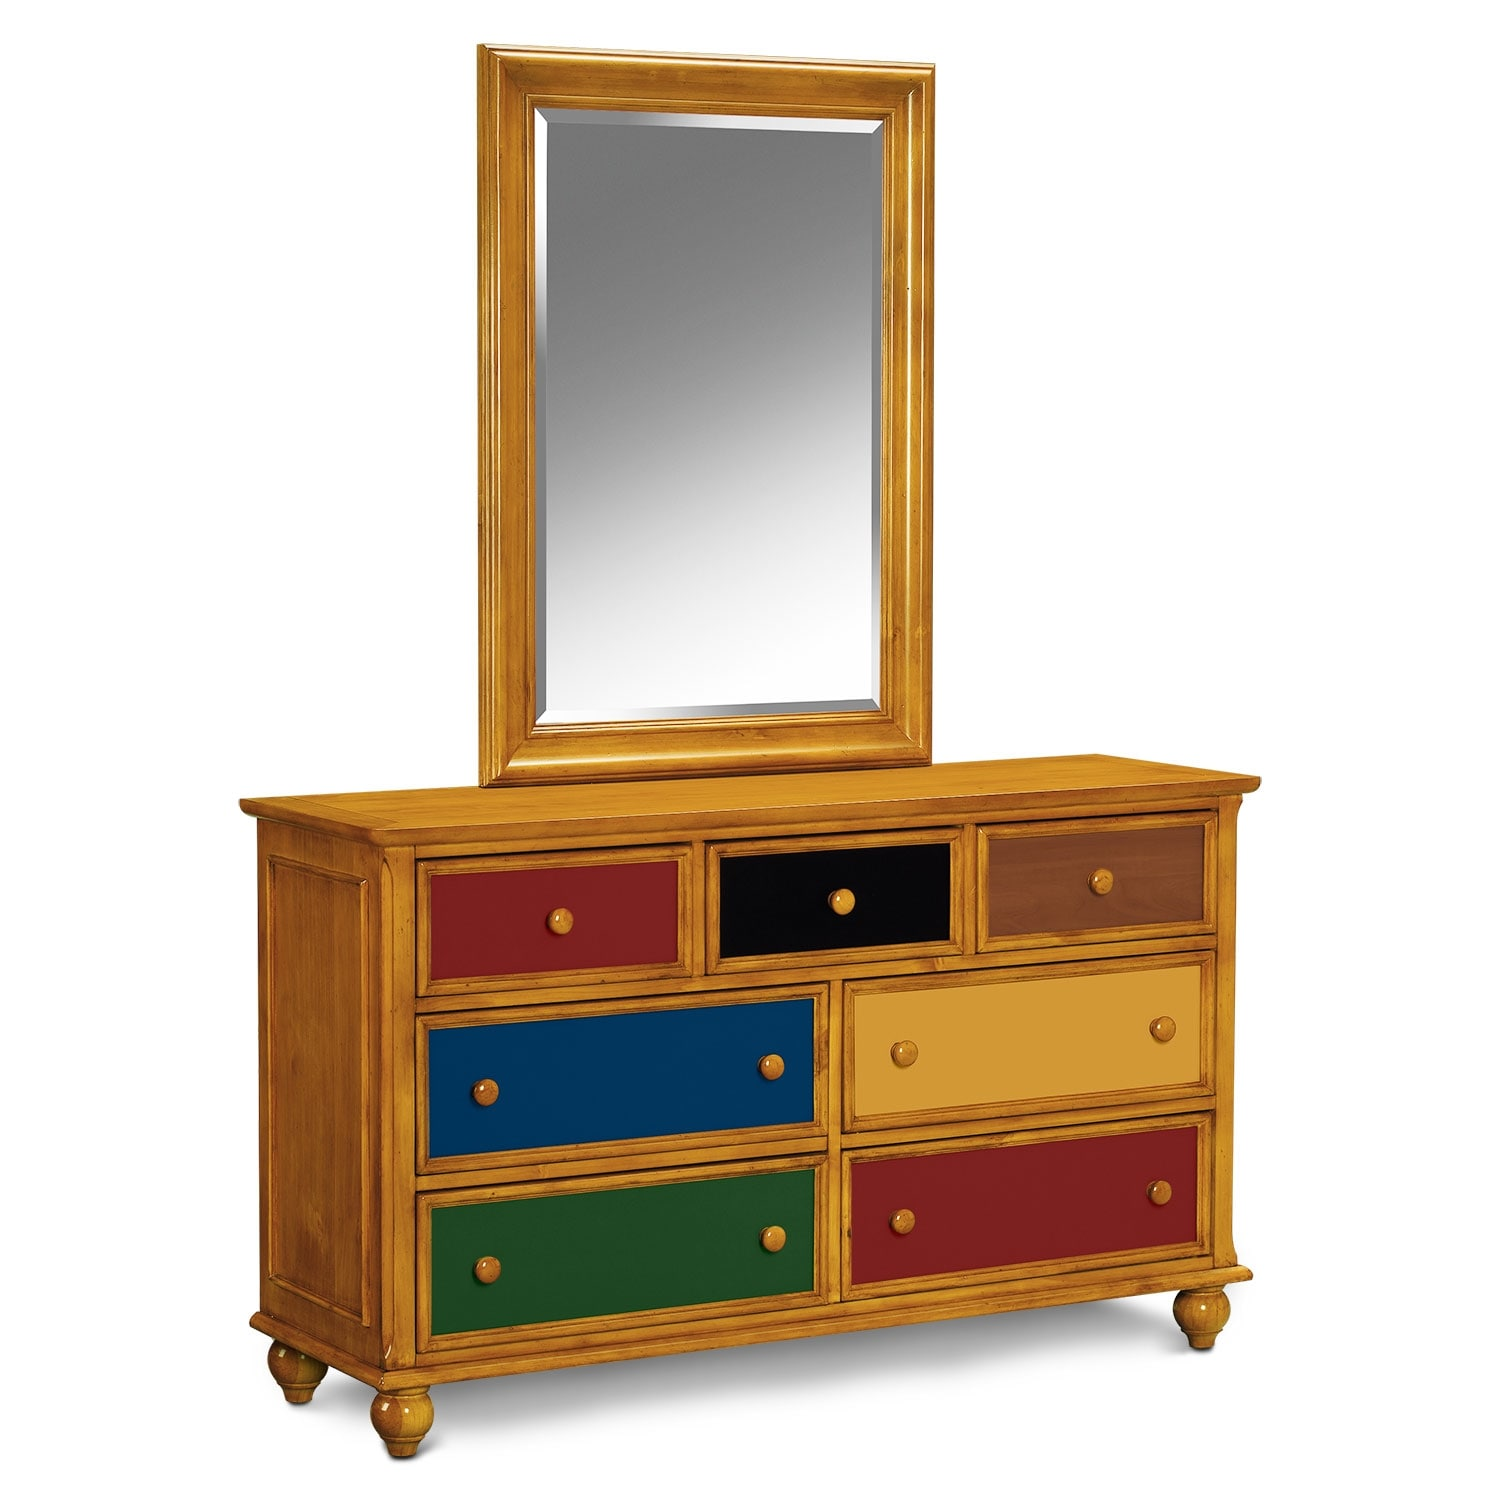 Colorworks Dresser and Mirror - Honey Pine